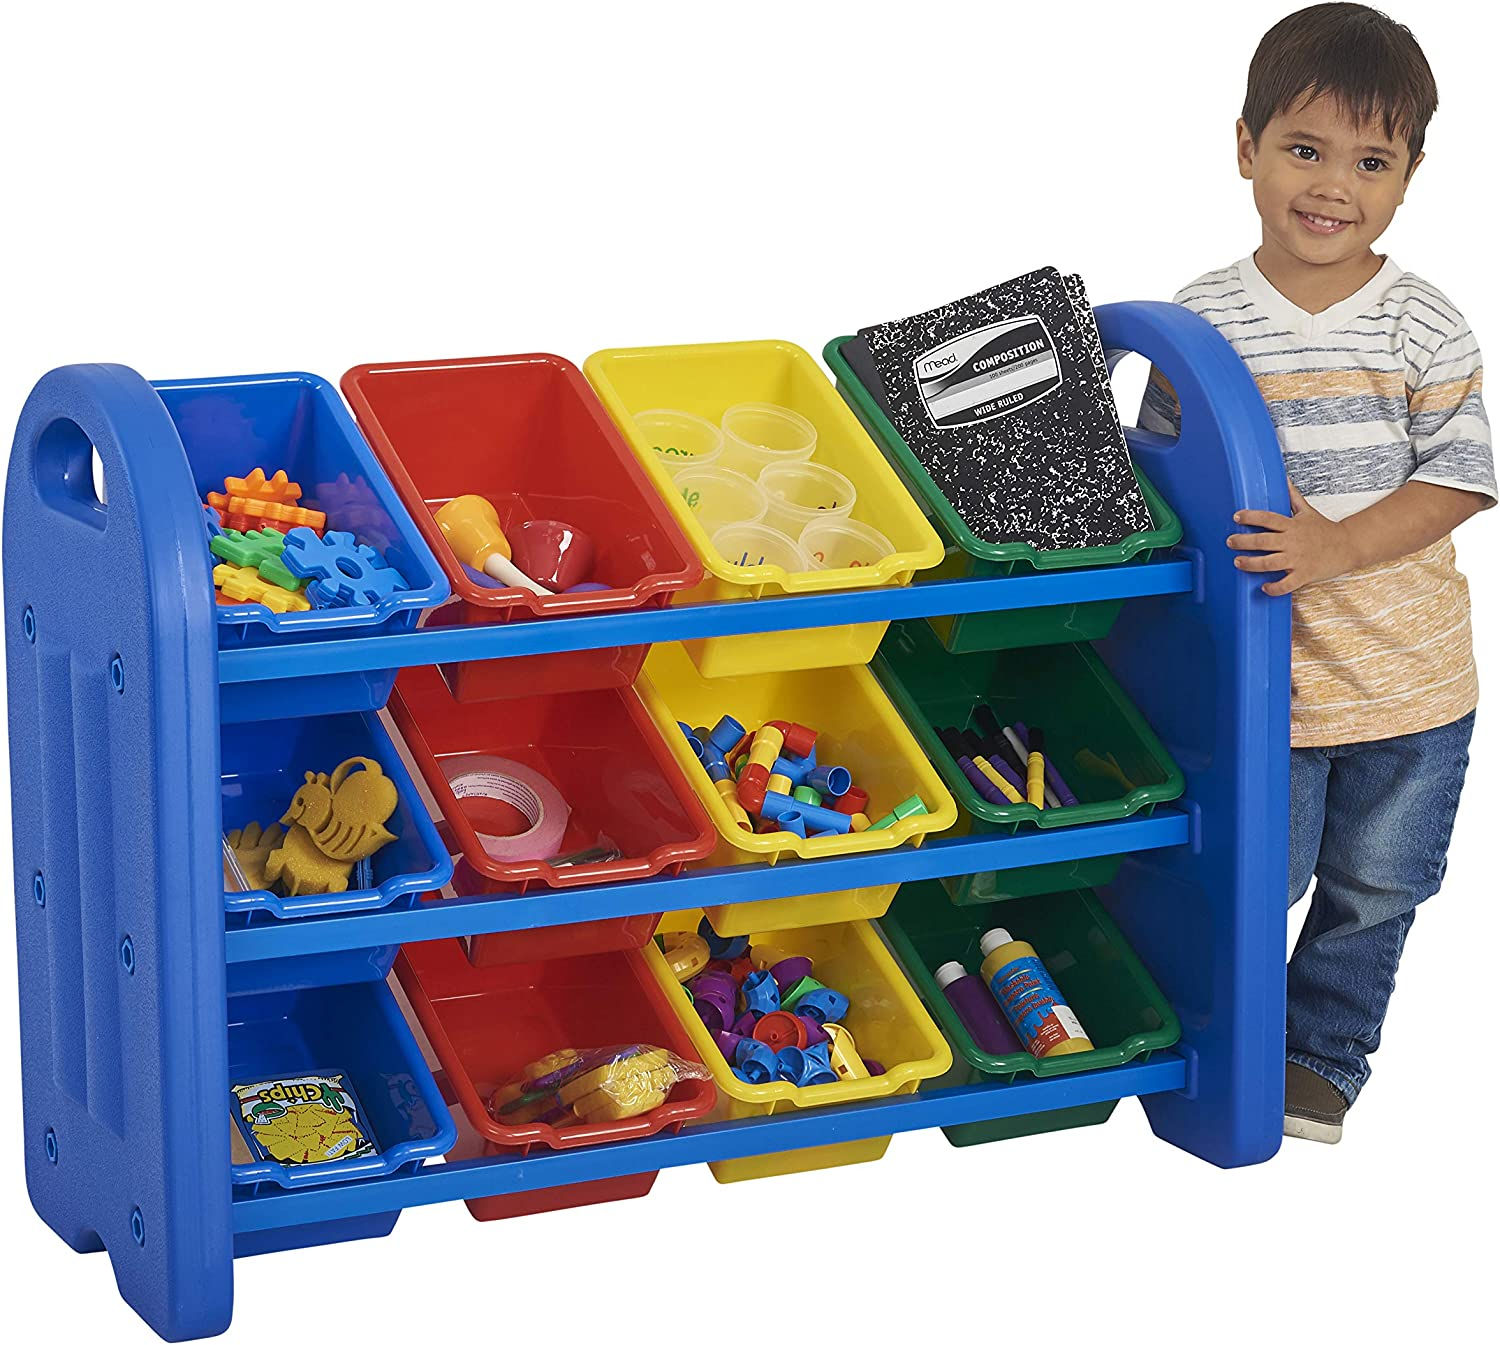 Amazon Com Ecr4kids 3 Tier Toy Storage Organizer With Bins Blue With 12 Assorted Color Bins Greenguard Gold Certified Toy Organizer And Storage For Kids Toys Kids Toy Storage Elr 0216 Industrial Scientific